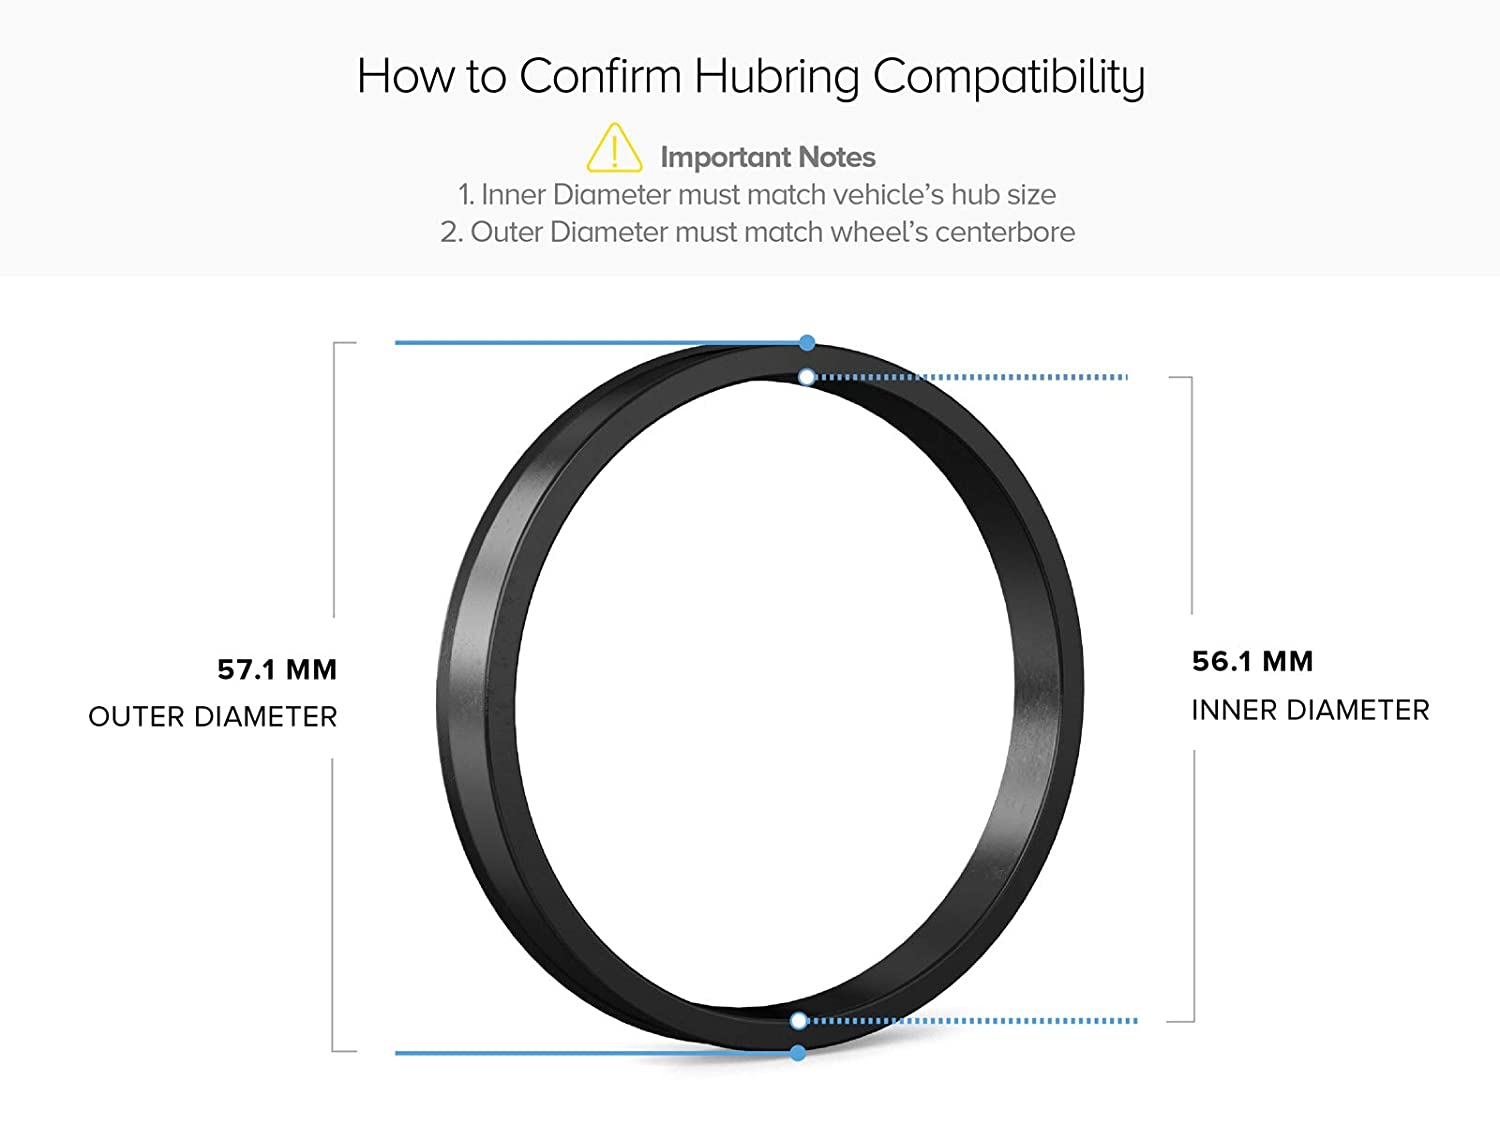 72.6mm Wheel Centerbore - Can fit Subaru Honda Acura Scion FRS Pack of 4 Black Poly Carbon Plastic Hubrings Hub - 56.1mm ID to 72.6mm OD Only Works on 56.1mm Vehicle Hubs /& Hubcentric Rings